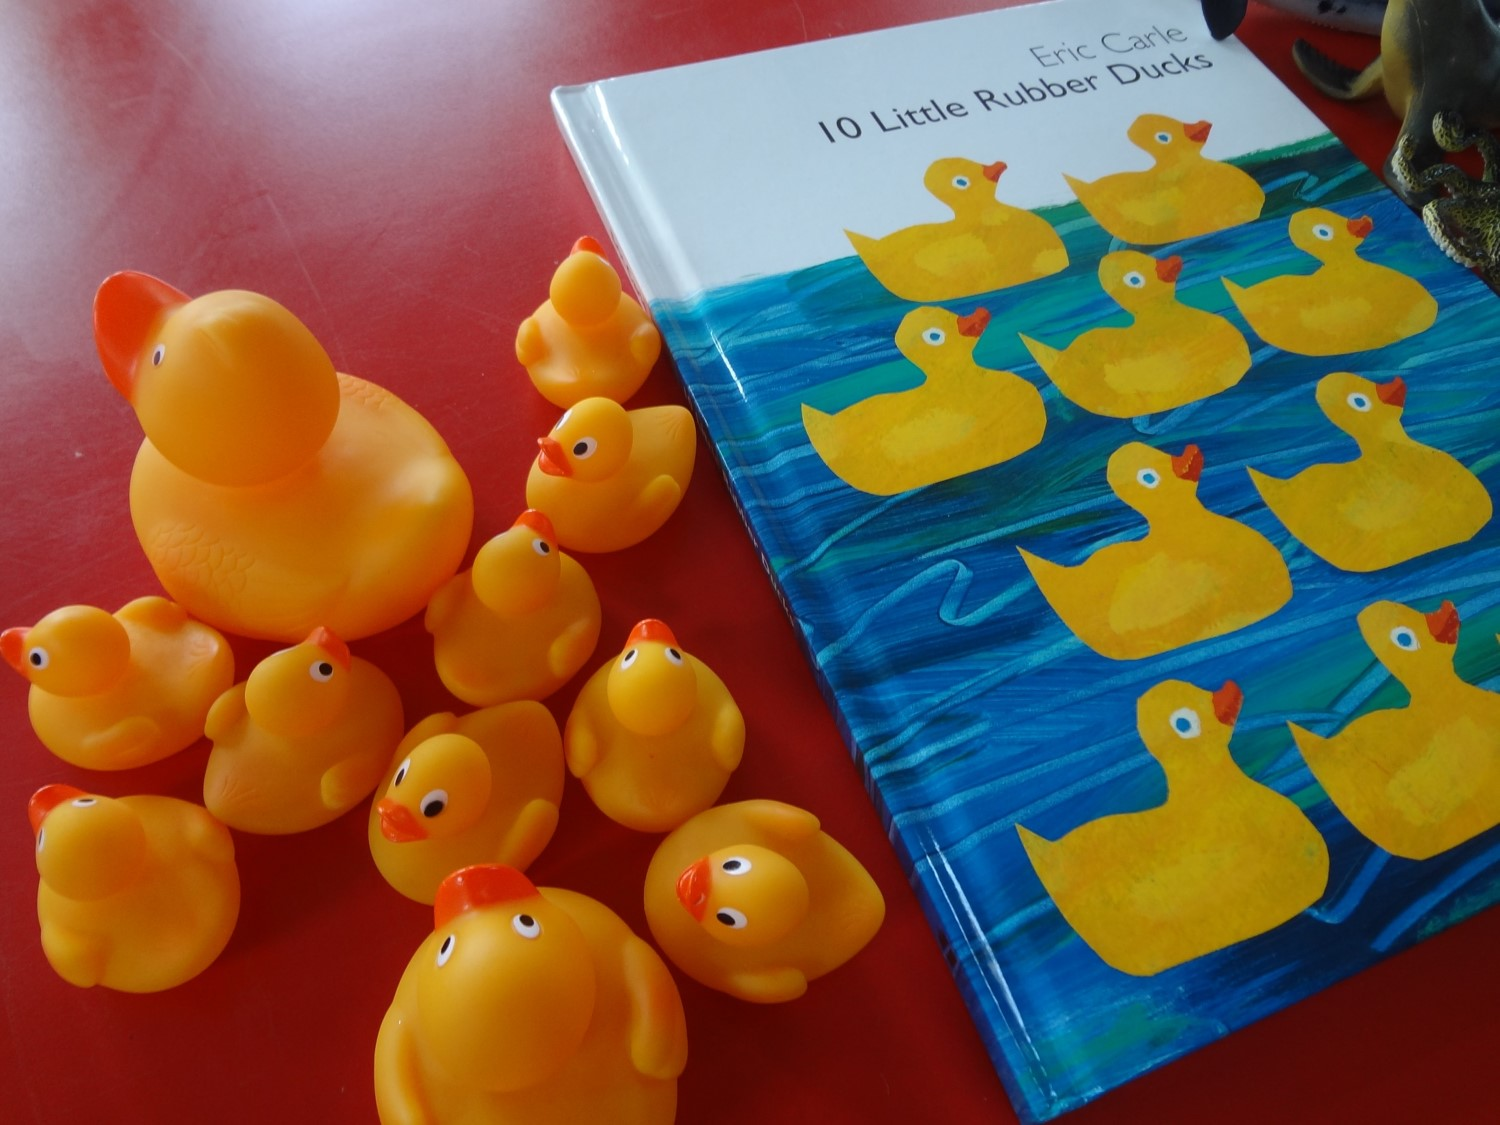 it u0027s all about stories a story cafe 10 little rubber ducks